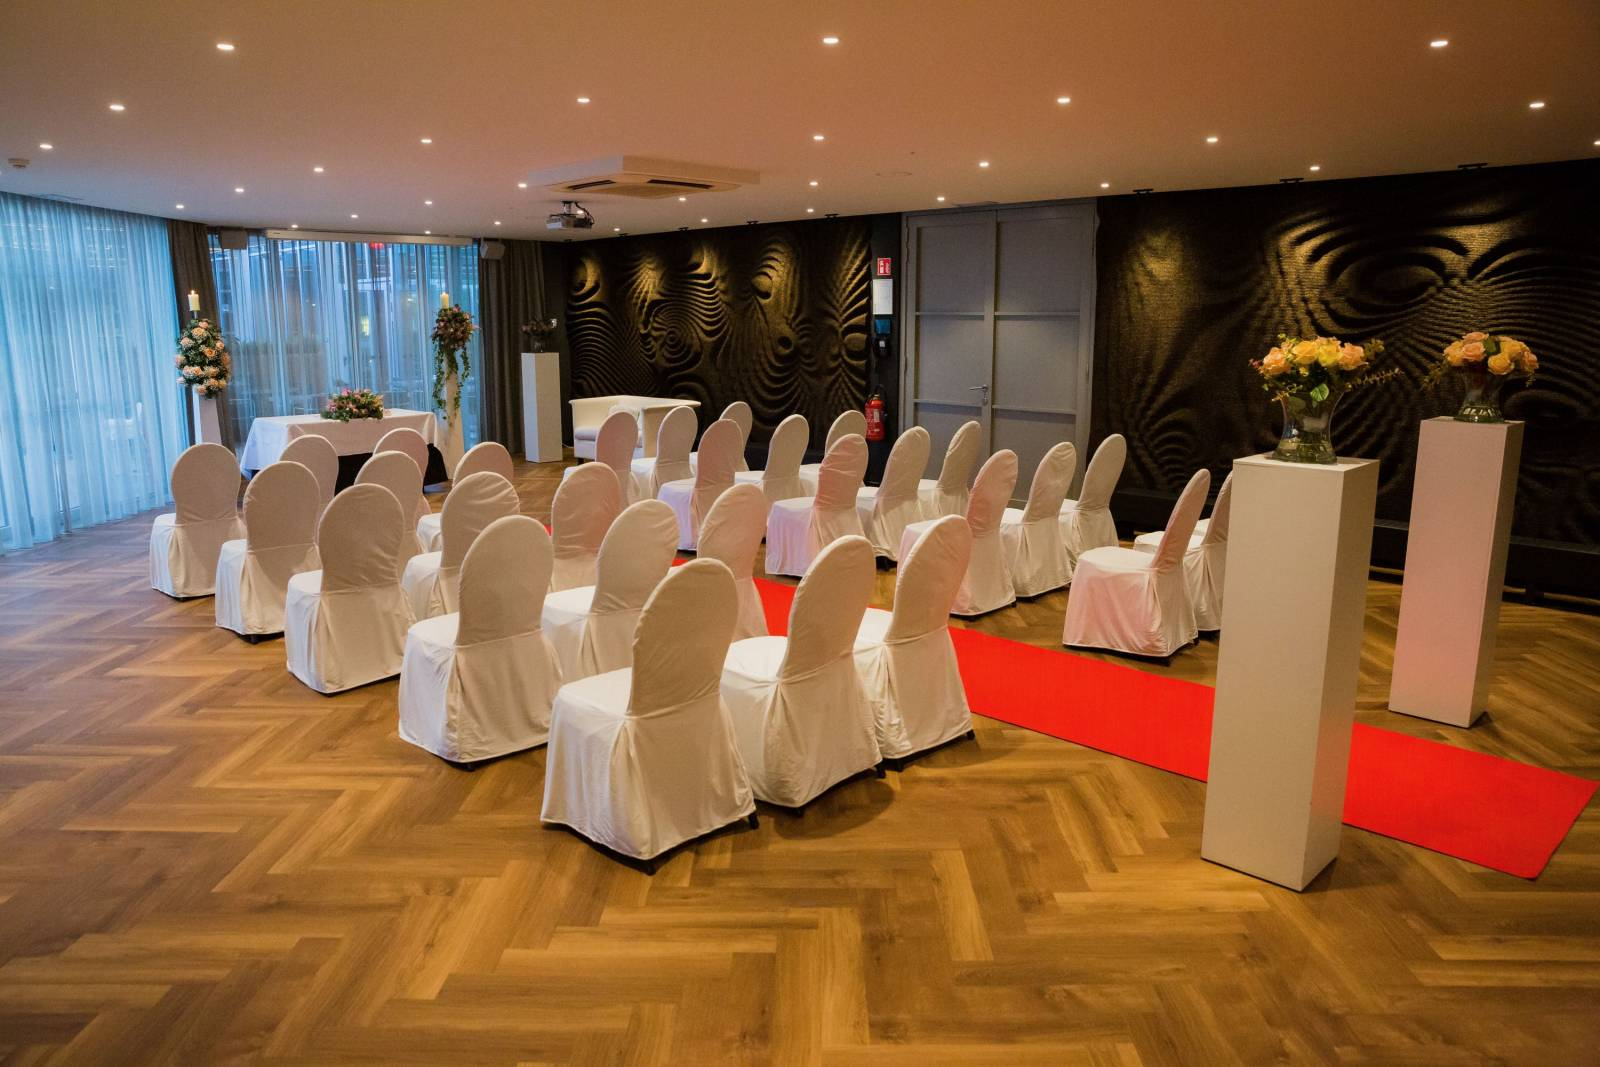 Van der Valk hotel Beveren - Feestzaal - Trouwzaal - House of Weddings - 21